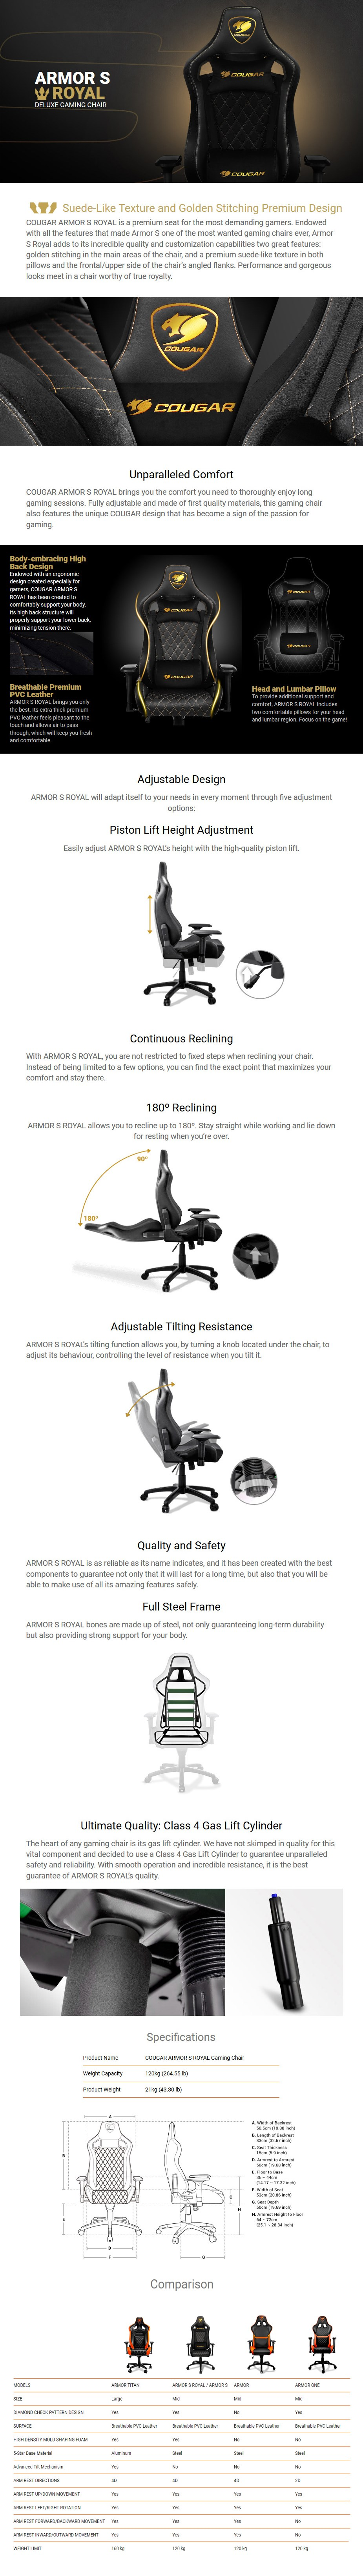 Cougar Armour S Royal Deluxe Gaming Chair - Desktop Overview 1